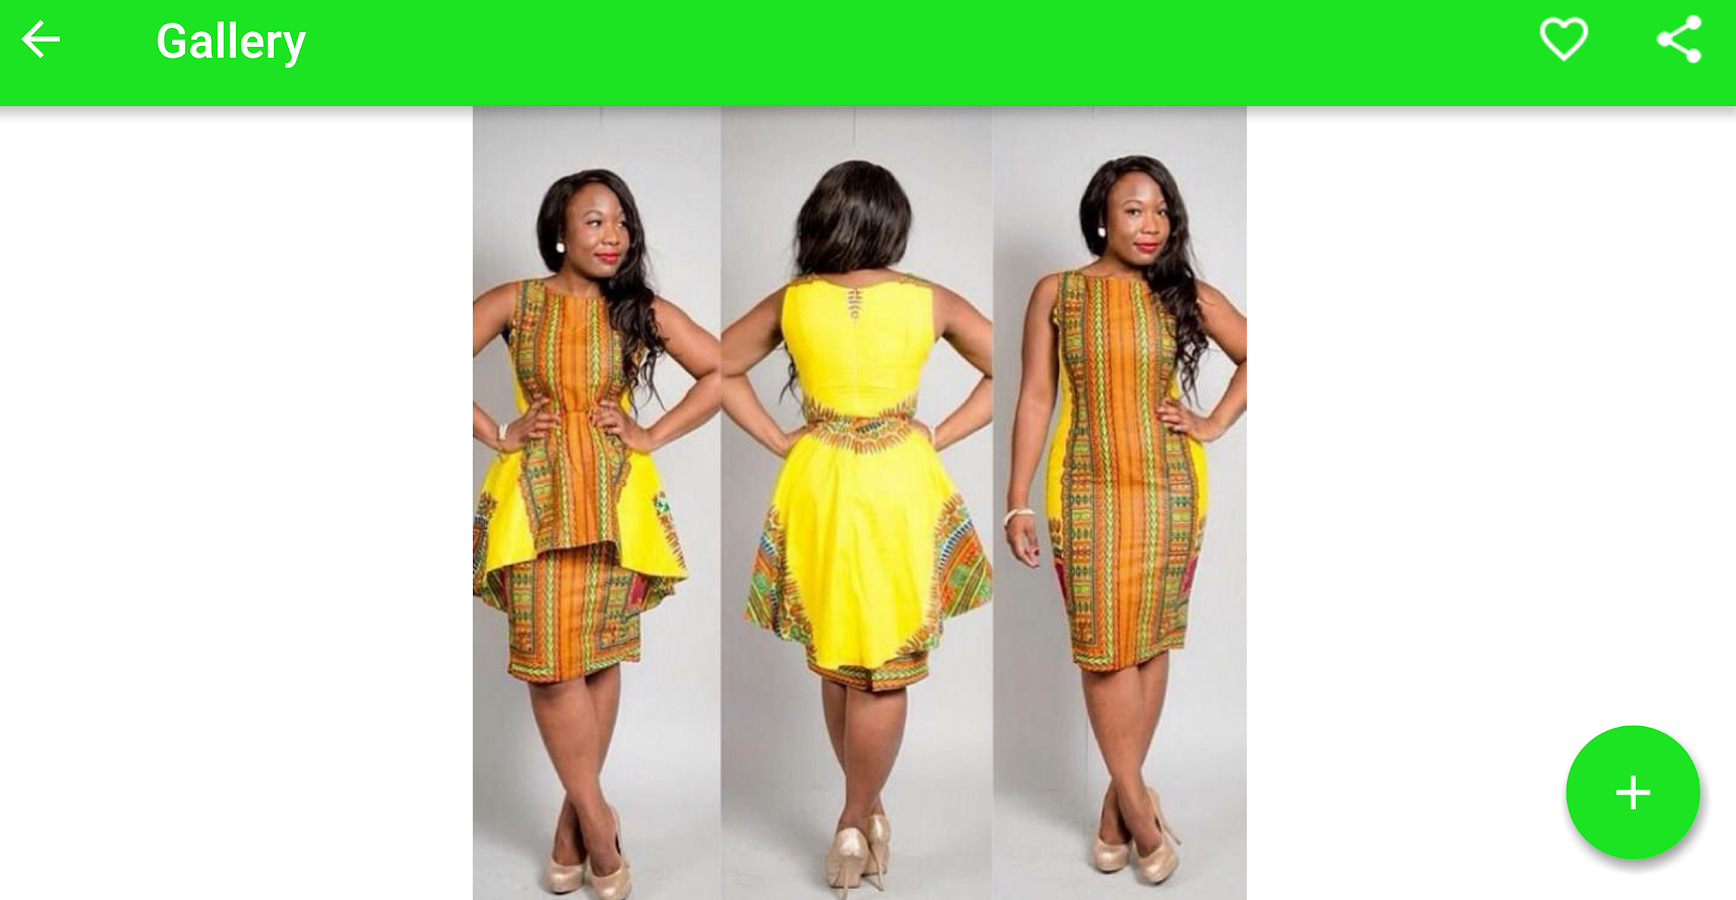 Dress Design New African Dress Design Android Apps On Google Play